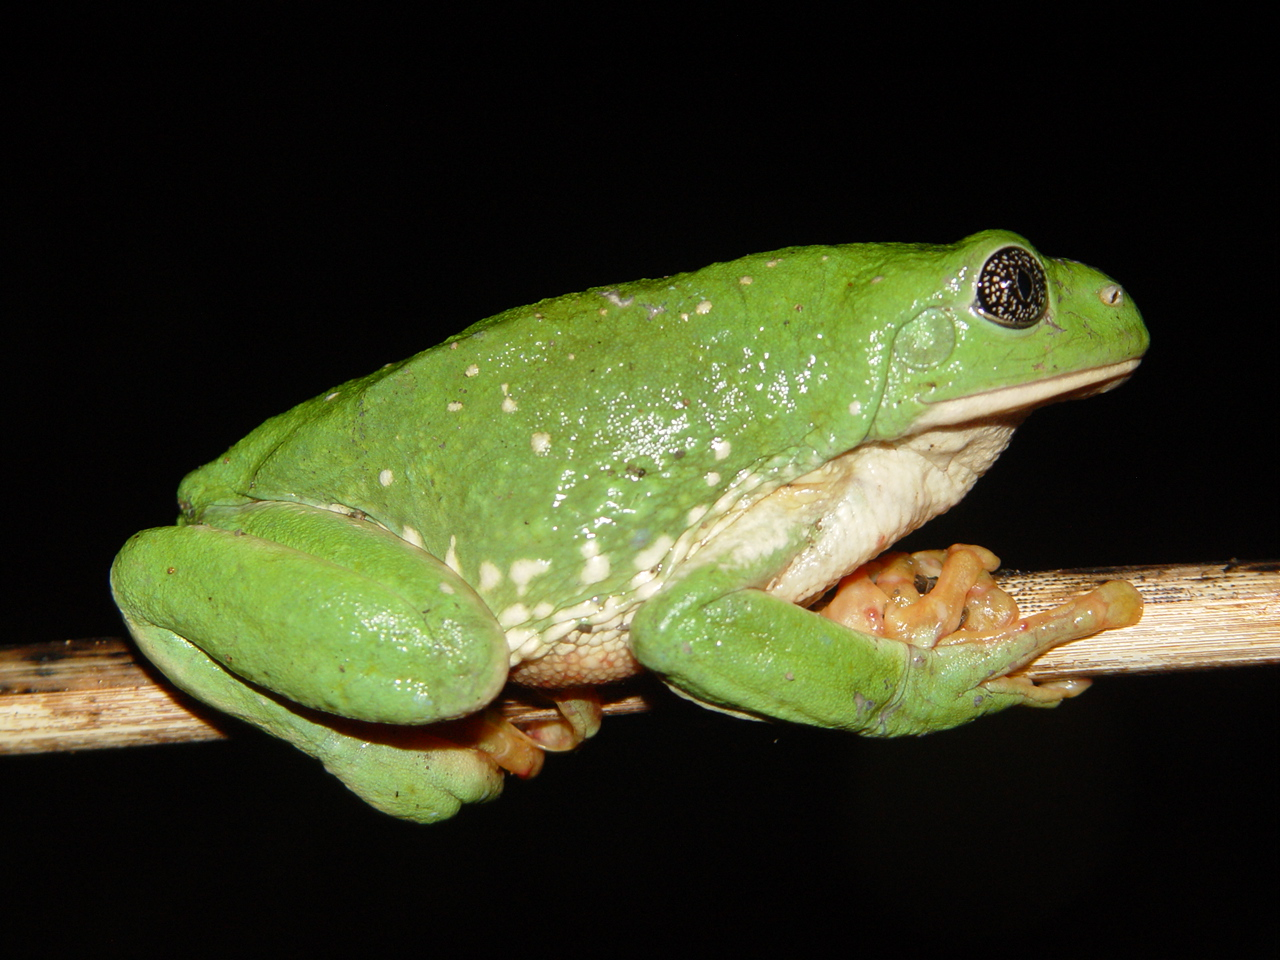 A Mexican leaf frog, photographed near Alamos, Mexico. Both plant and animal species in the tropics, like this frog, were found to occur over a narrower range of temperatures than temperate species, which may make tropical species much more vulnerable to